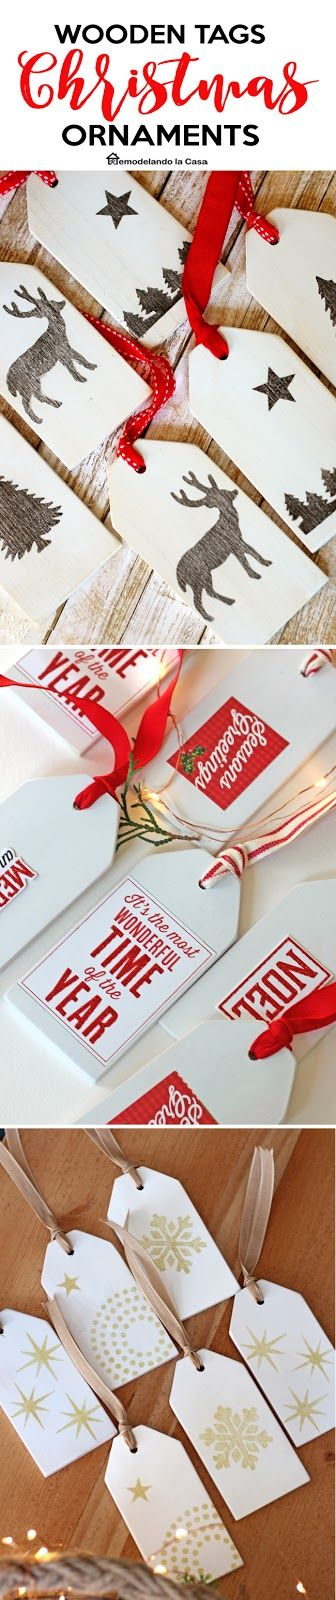 Get a bunch of this economical wooden tag Christmas ornaments to hang on the tree, fill stockings, or decorate your presents!